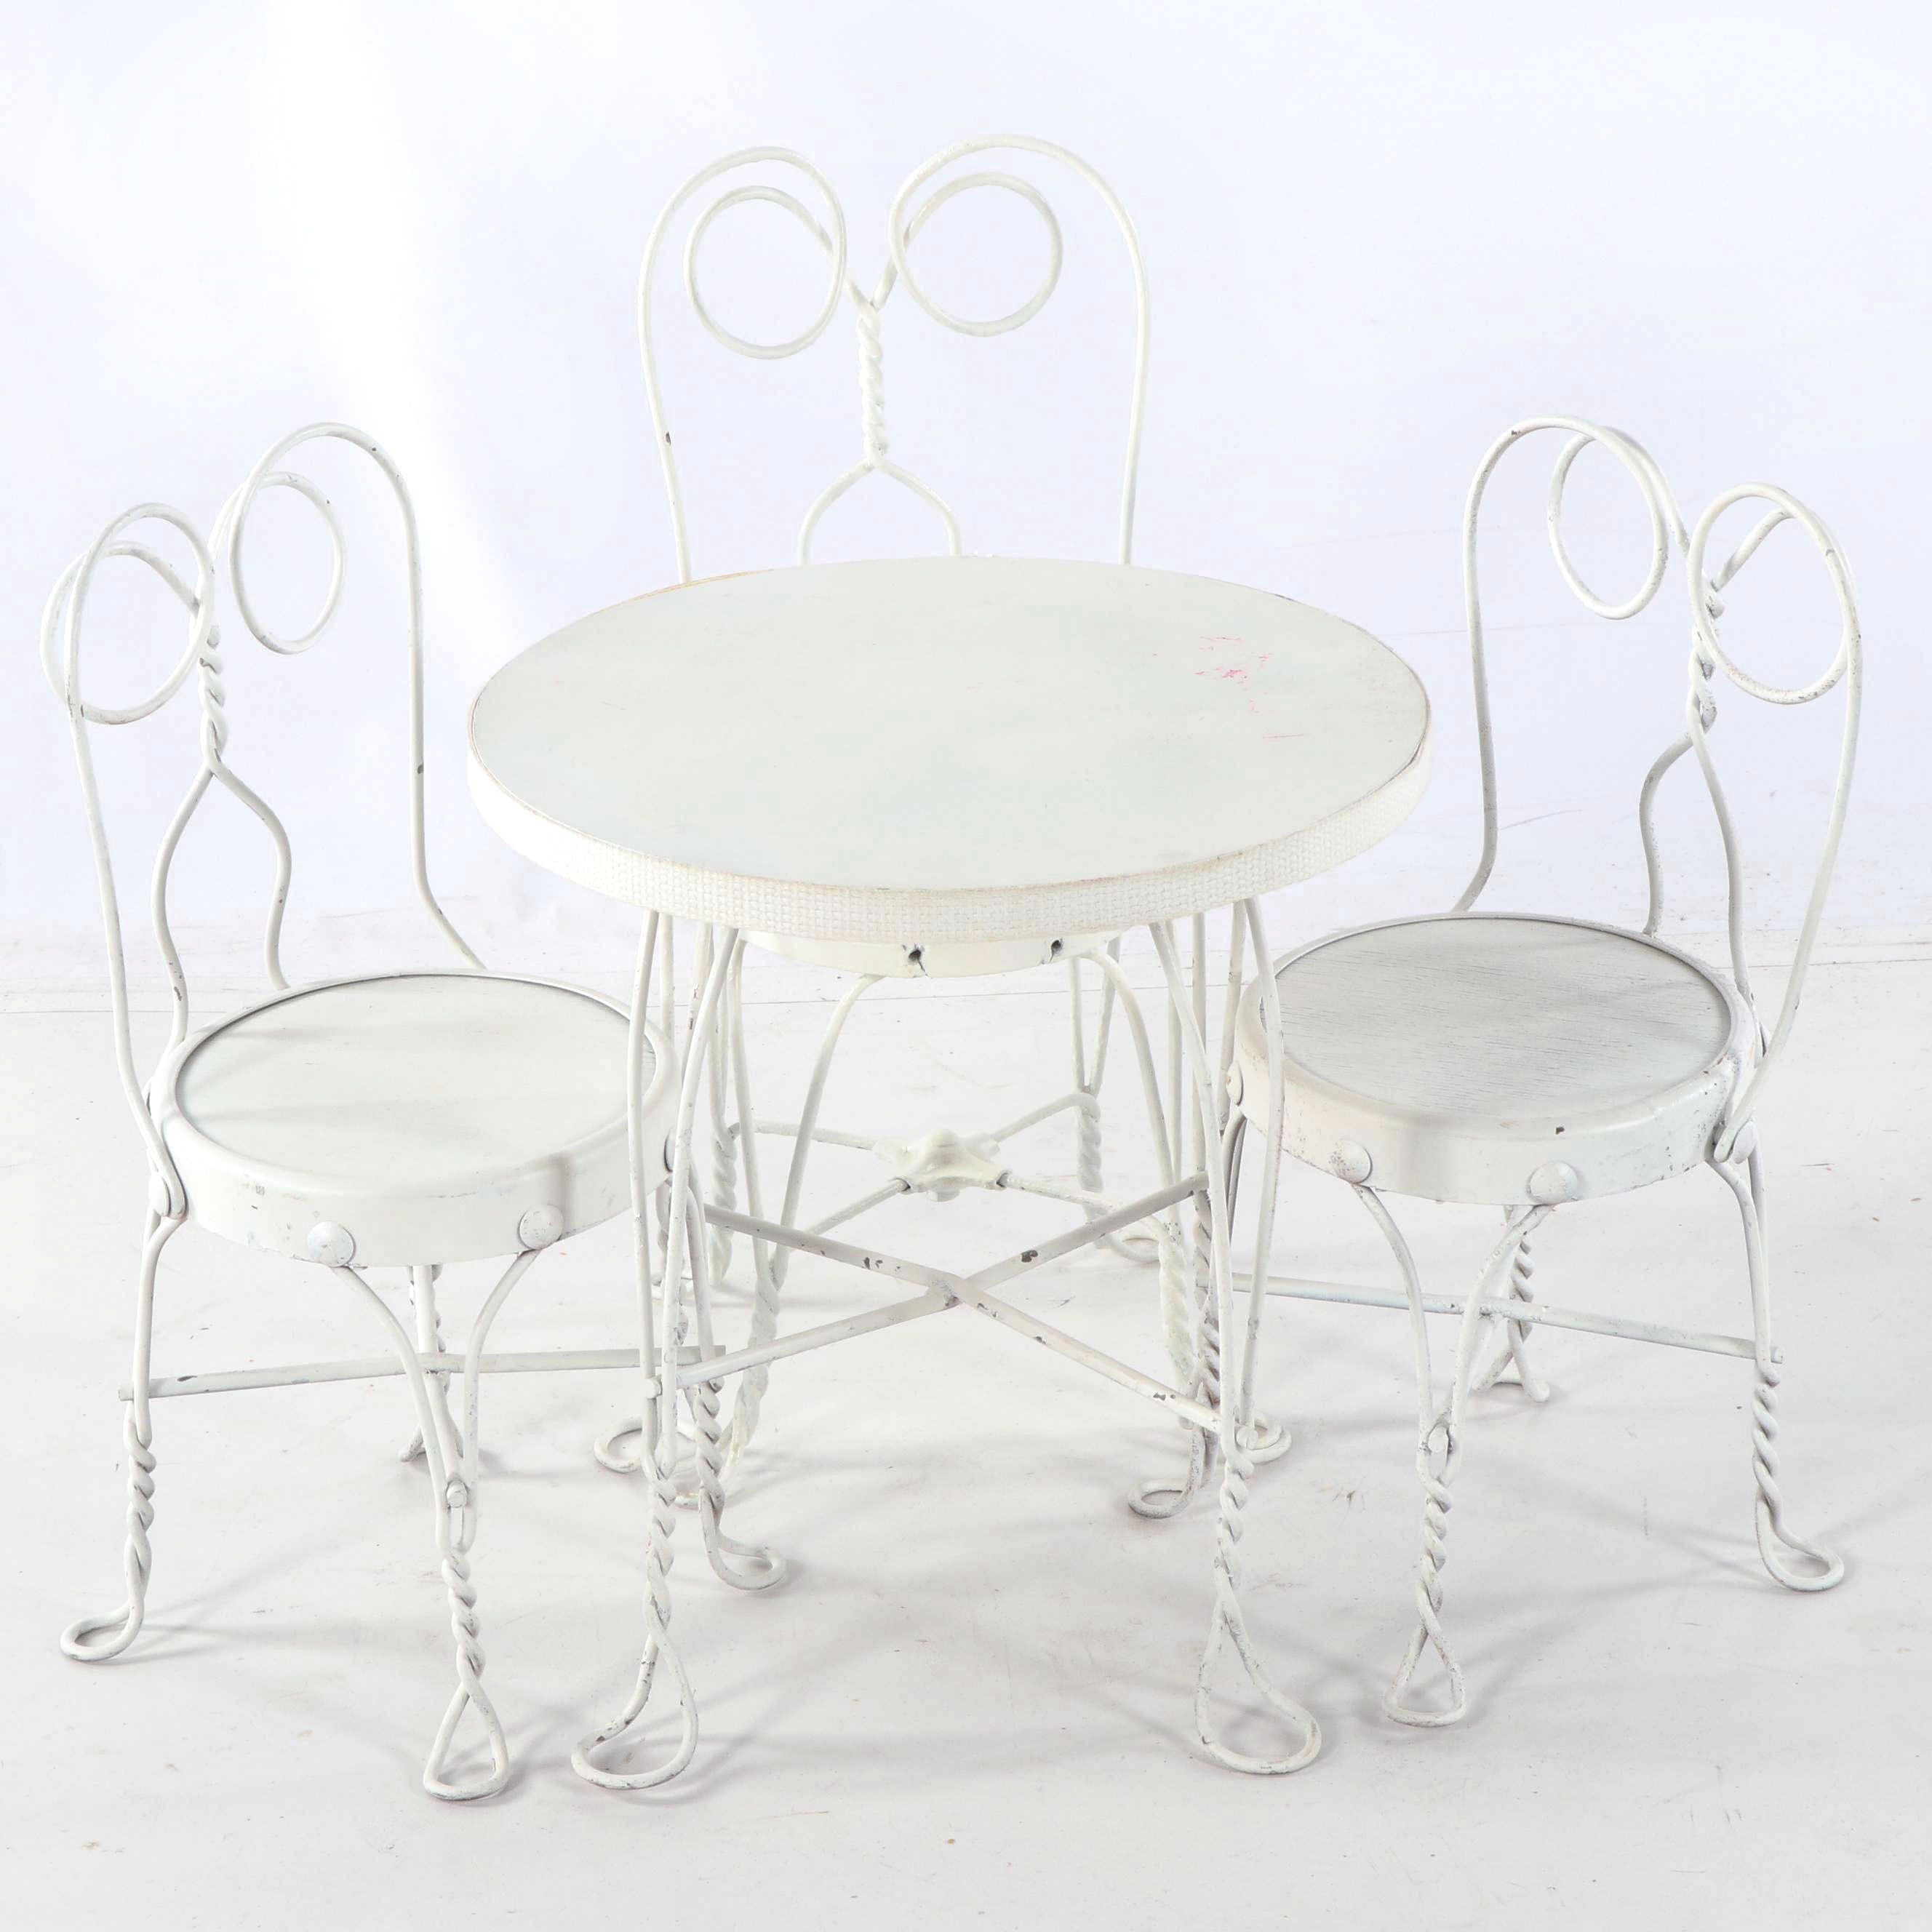 Children's Painted Metal Bistro Table and Chairs Set, 20th Century